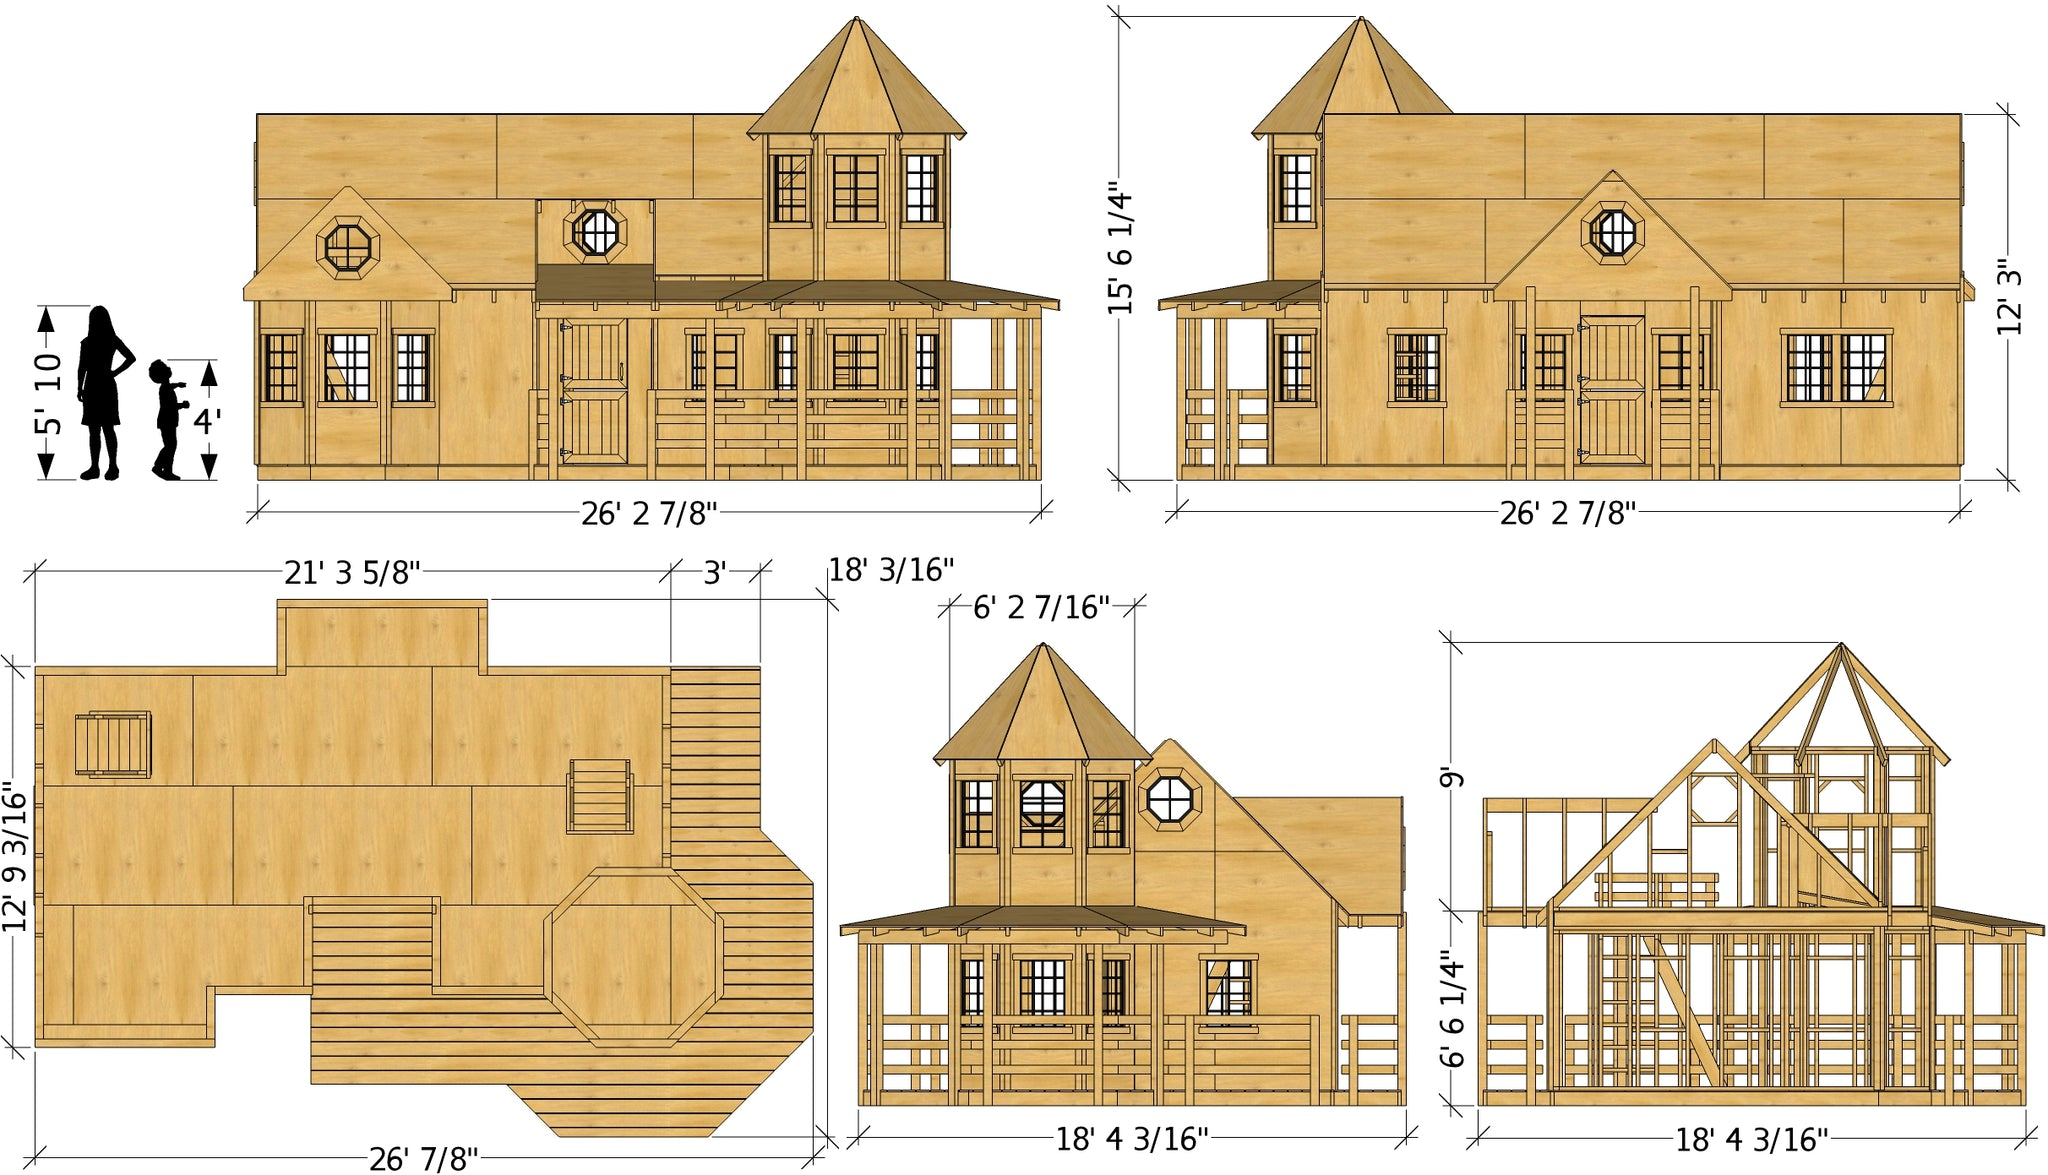 18x26 Victorian Mansion Playhouse Plan for Kids – Paul's ... on playhouse lighting, 2 story playhouse plans, a frame playhouse plans, playhouse deck plans, playhouse construction, playhouse doors, playhouse flooring, playhouse furniture plans, playhouse on the mall, playhouse design plans, playhouse windows, playhouse wood plans, custom playhouse plans, playhouse bedroom plans, playhouse bed plans, girls playhouse plans, simple playhouse plans, playhouse stairs plans, playhouse size lincoln logs, playhouse interiors,